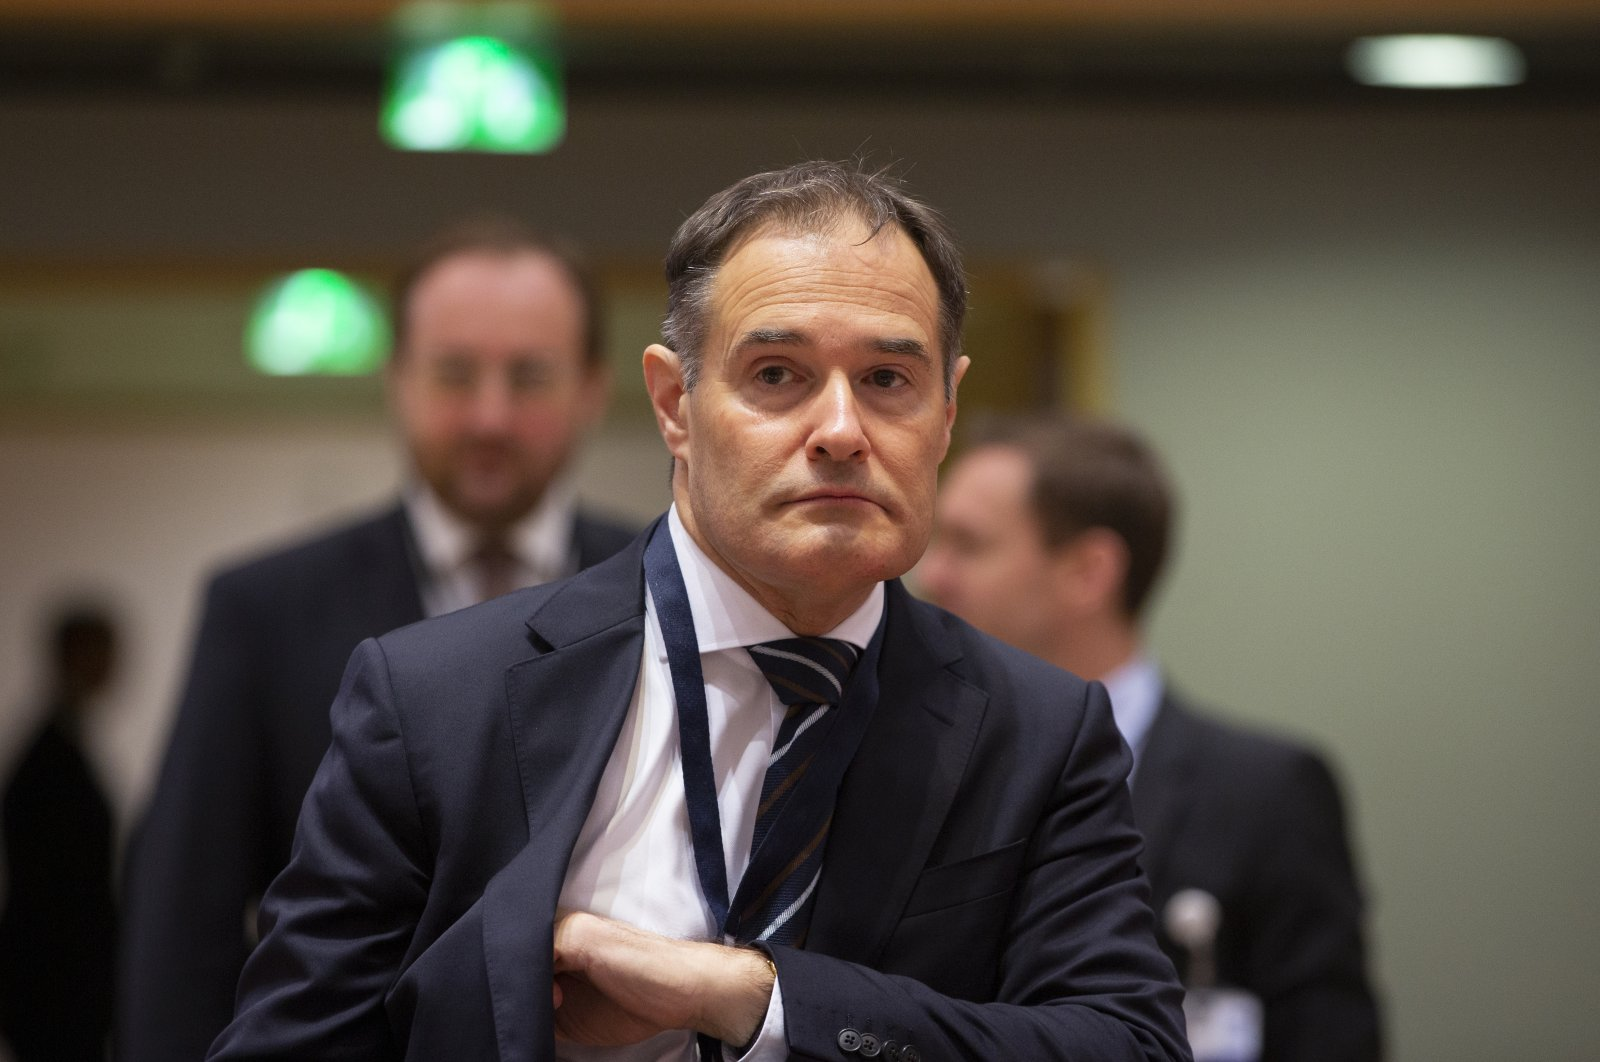 Fabrice Leggeri, Executive Director of Frontex, attends a meeting of EU interior ministers at the EU Council building in Brussels, Dec. 2, 2019. (AP Photo)